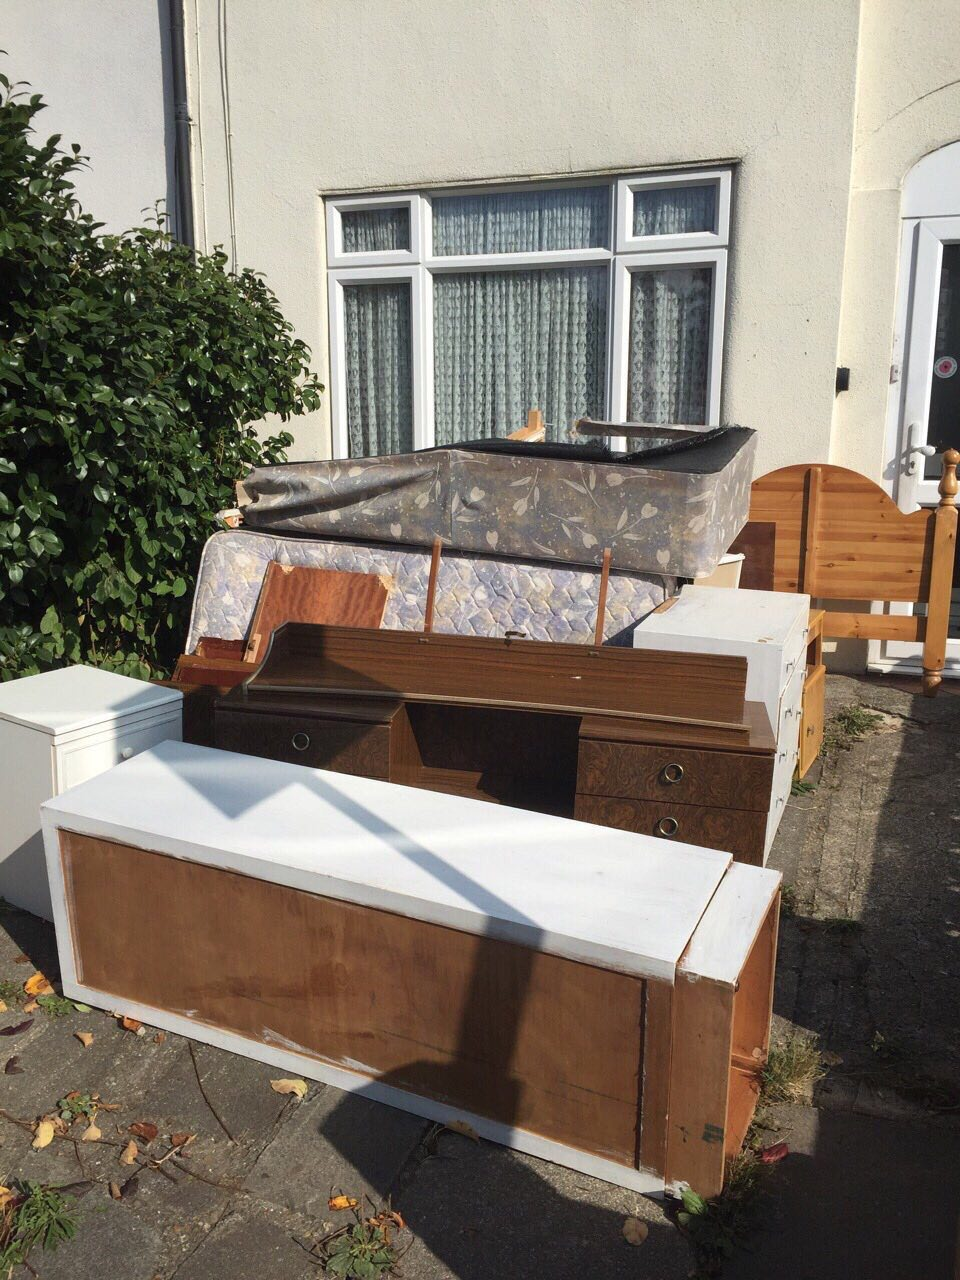 Wanstead rubbish clearance E11